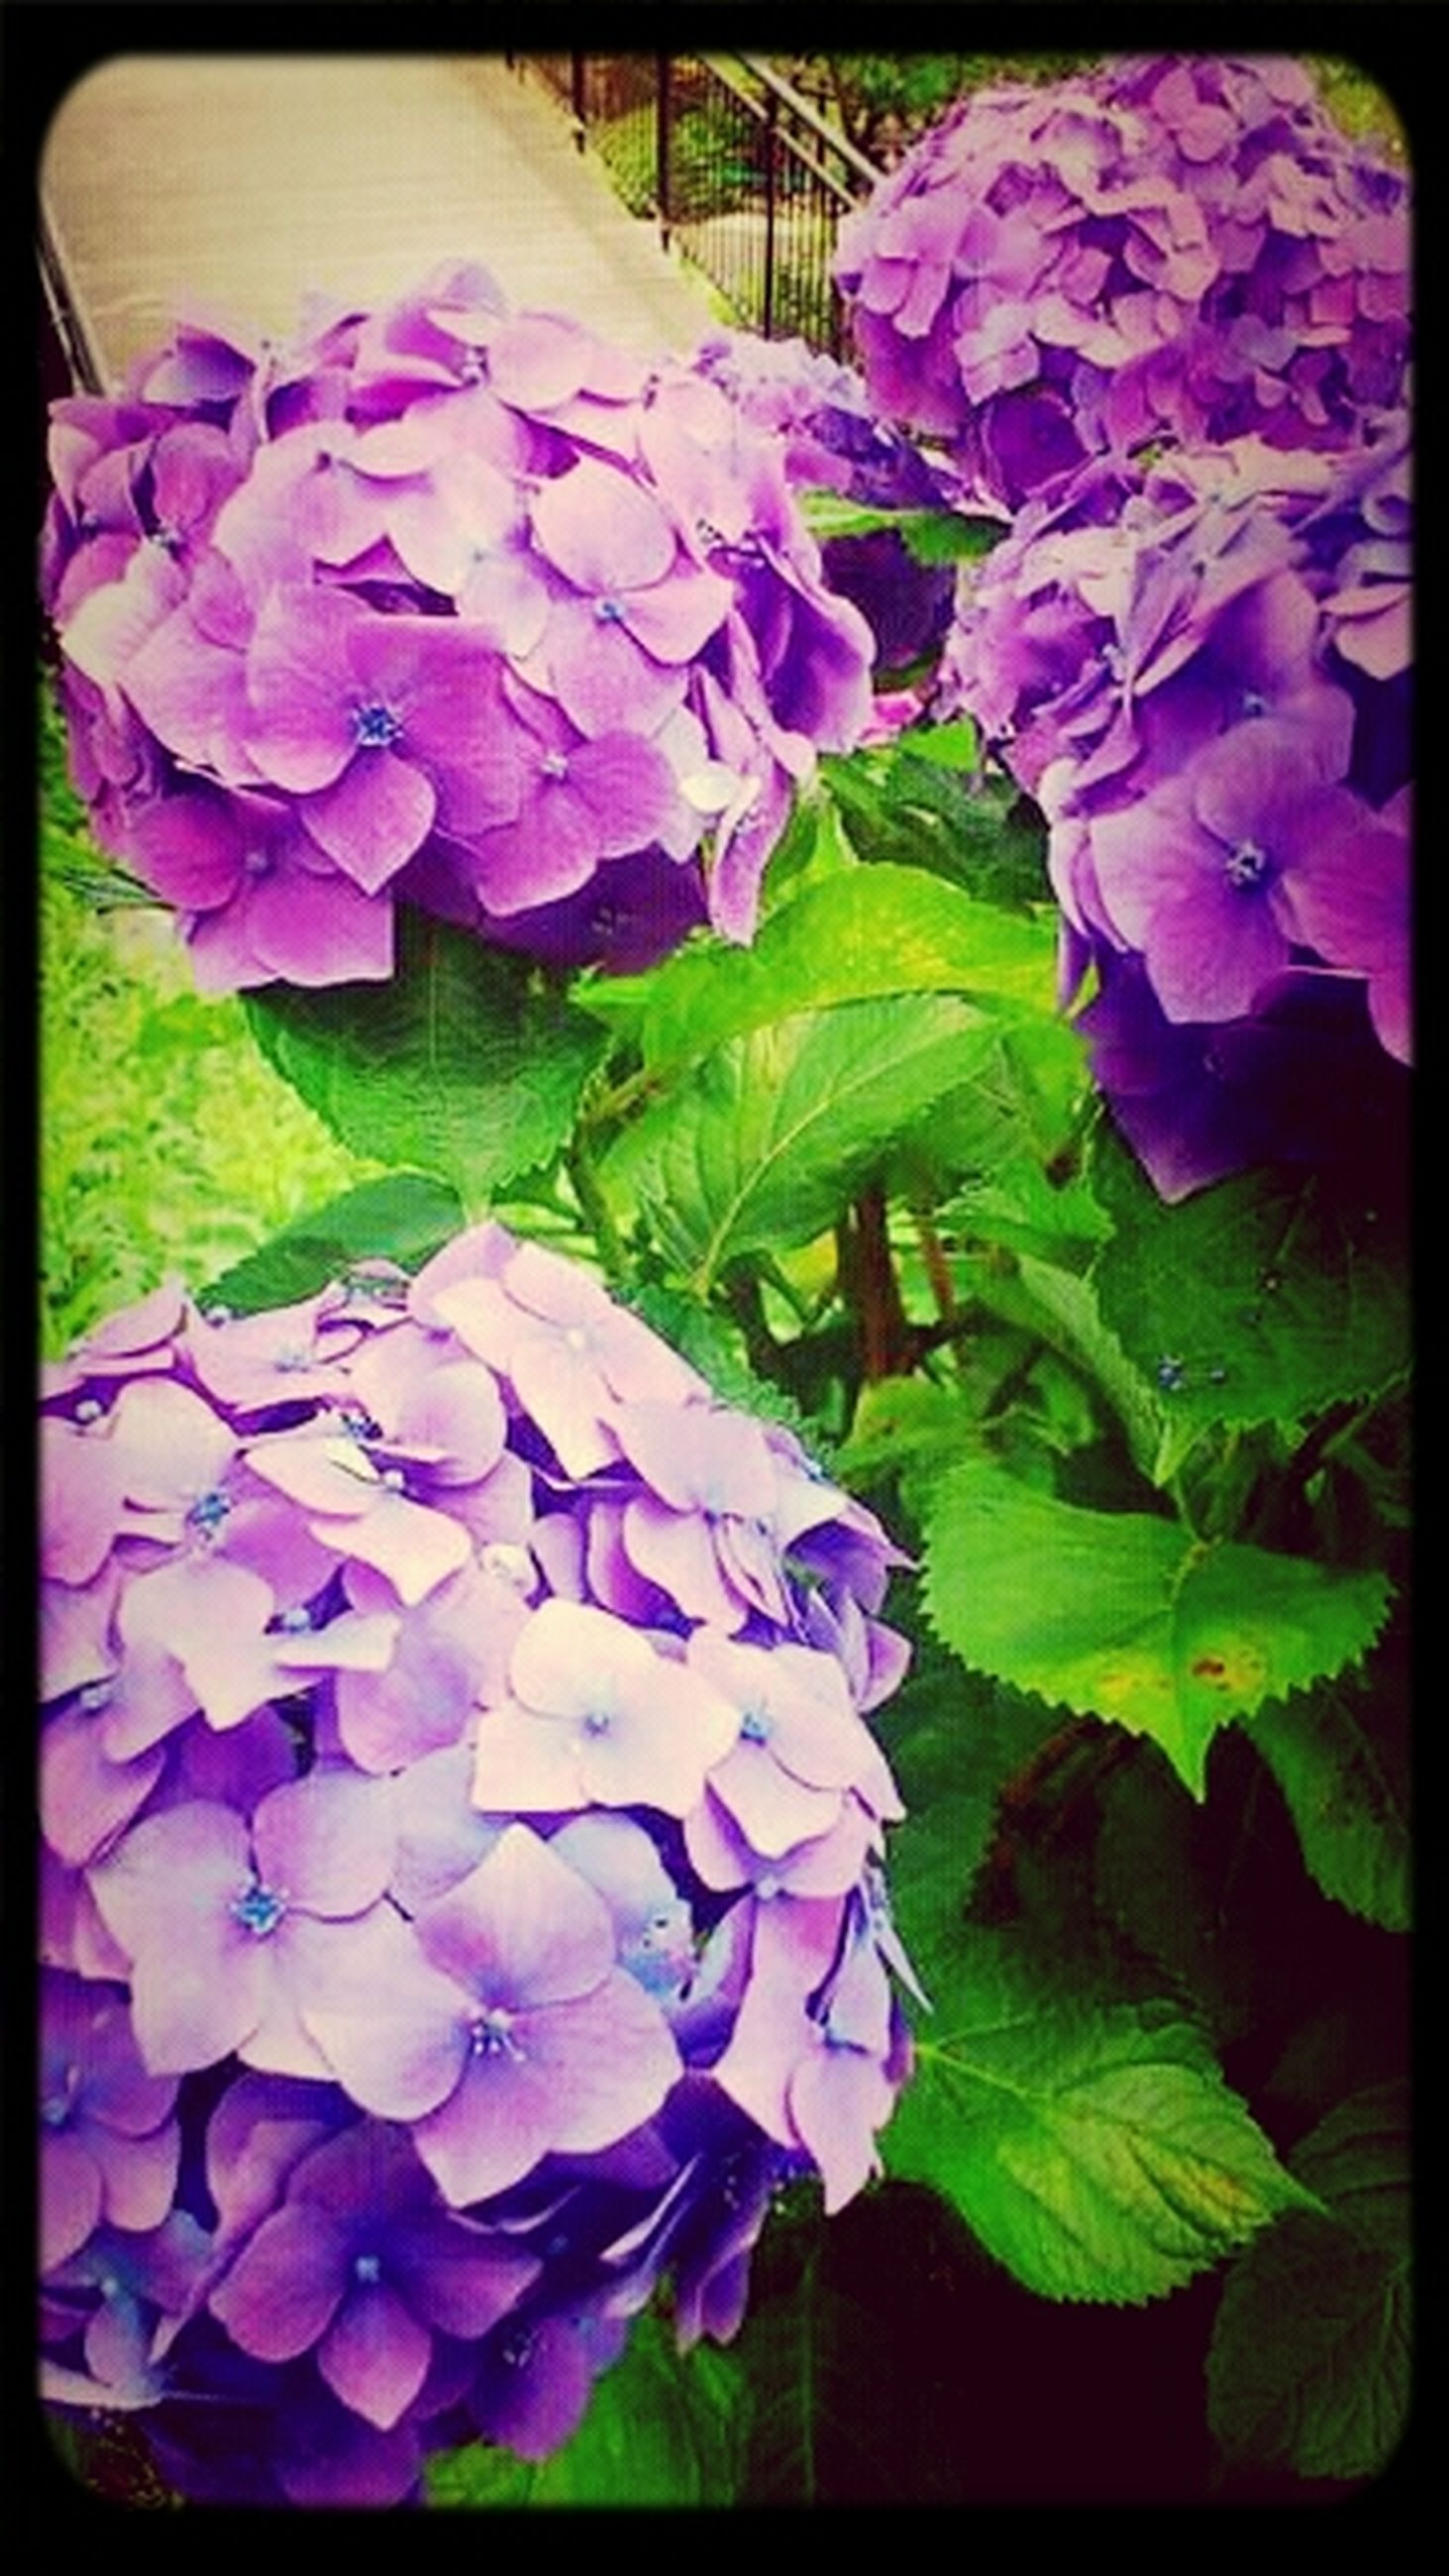 flower, transfer print, purple, freshness, petal, fragility, flower head, auto post production filter, beauty in nature, growth, plant, leaf, nature, blooming, close-up, blue, in bloom, outdoors, no people, park - man made space